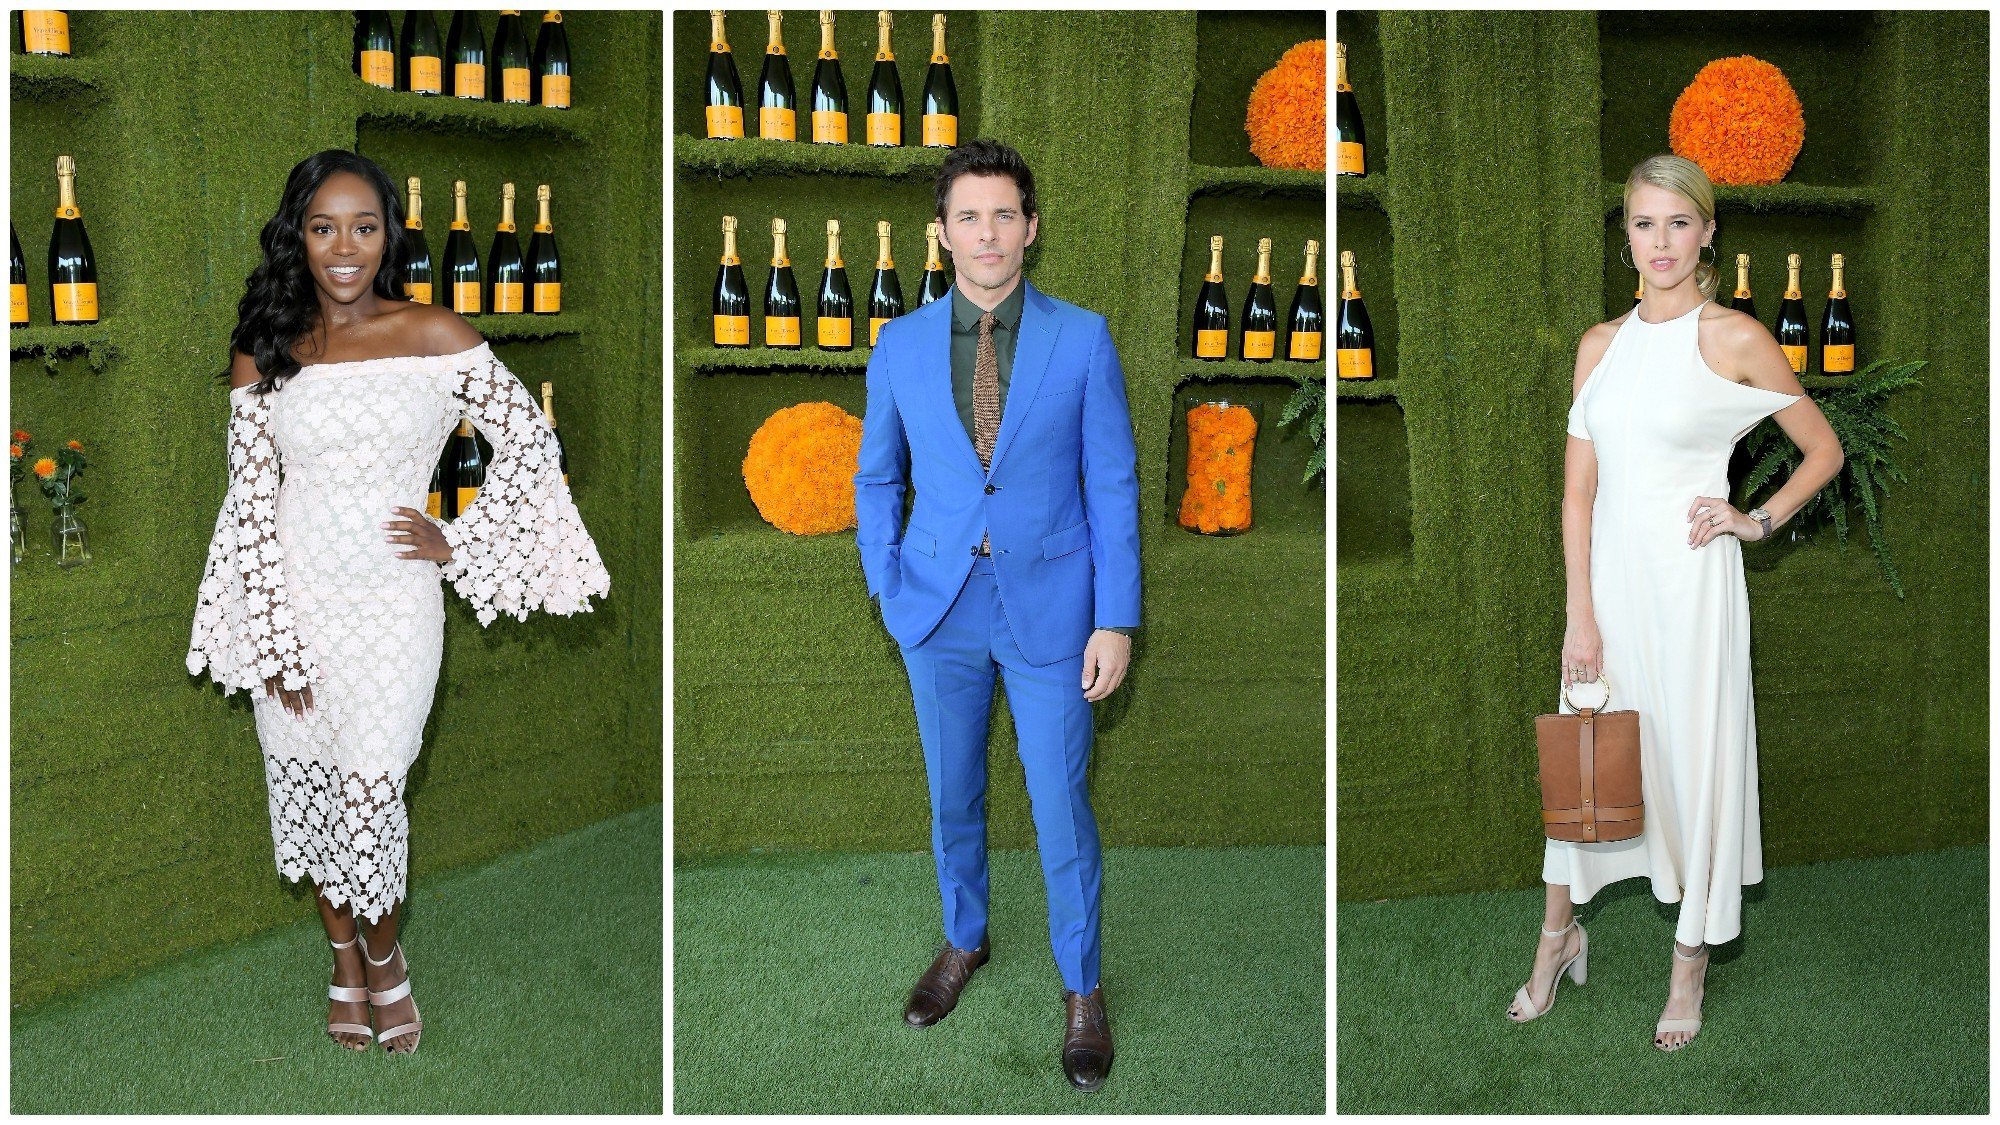 Aja Naomi King, left, James Marsden and Sarah Wright join the Hollywood crowd for a Saturday afternoon of polo.